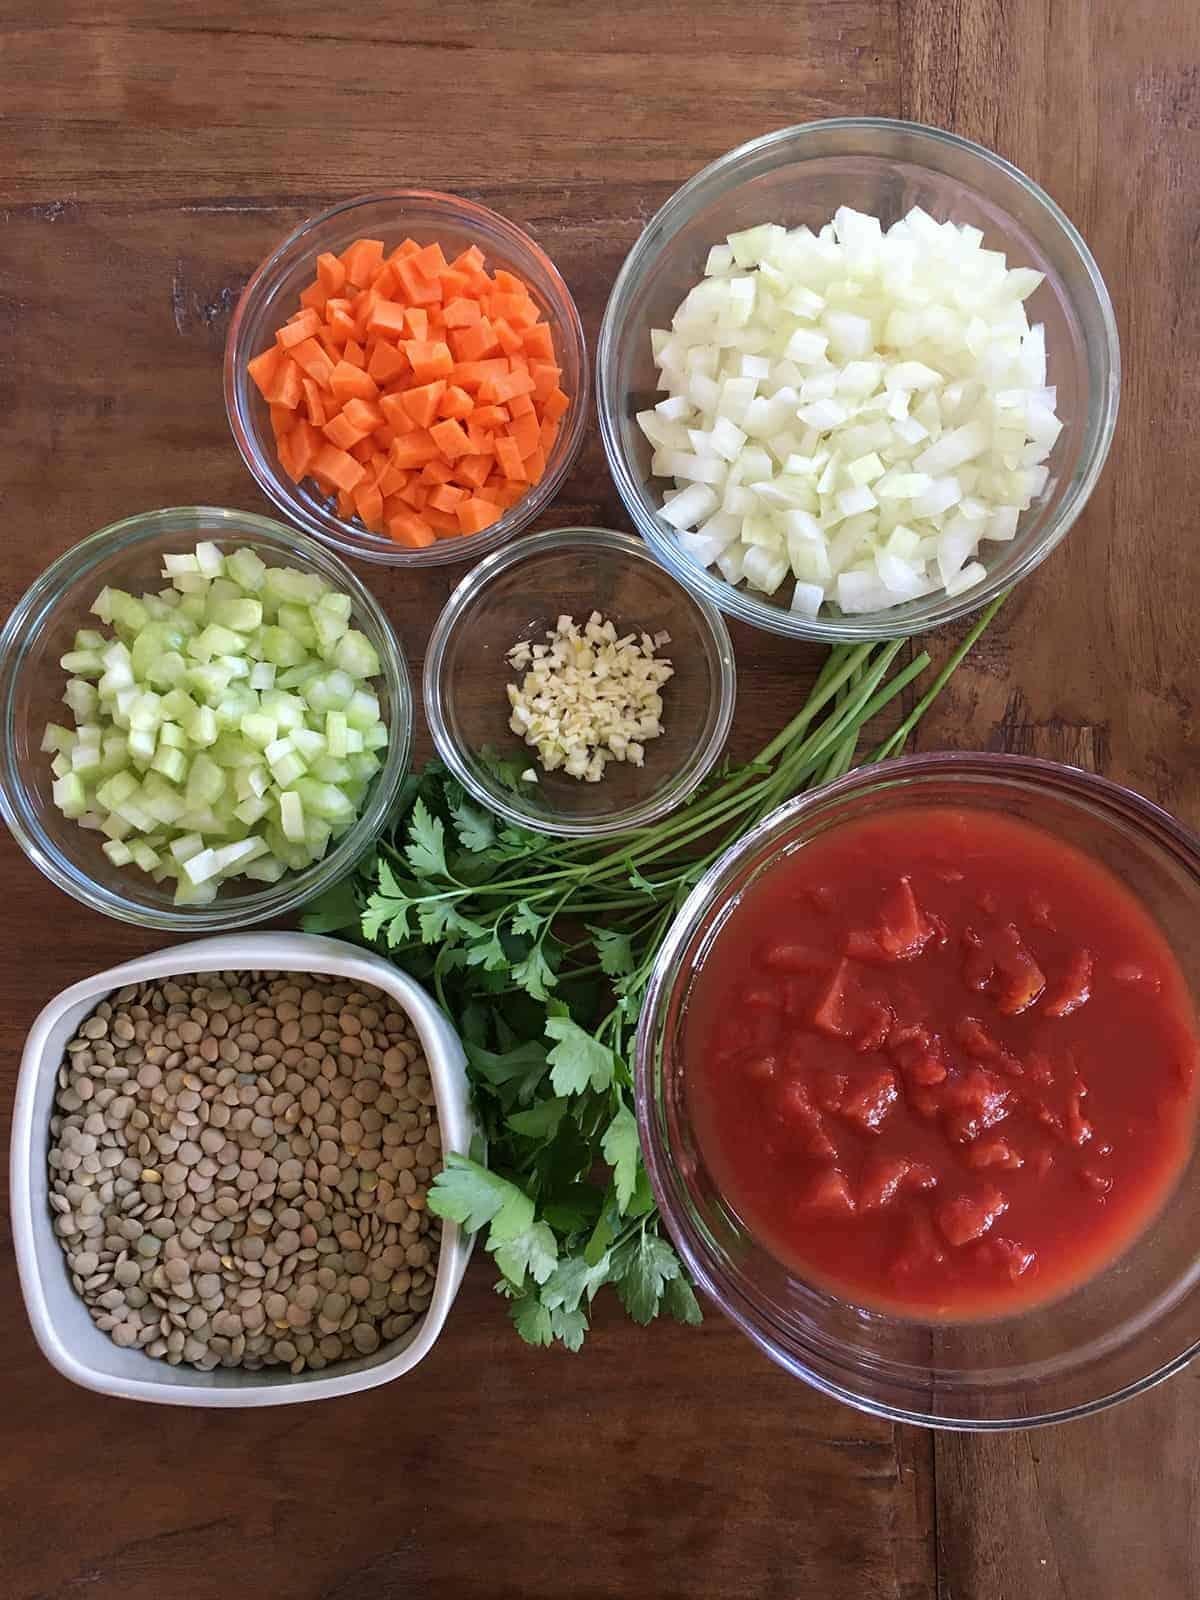 Chopped celery, carrots, onions and garlic in glass food prep bowls alongside green lentils, diced tomatoes and fresh parsley